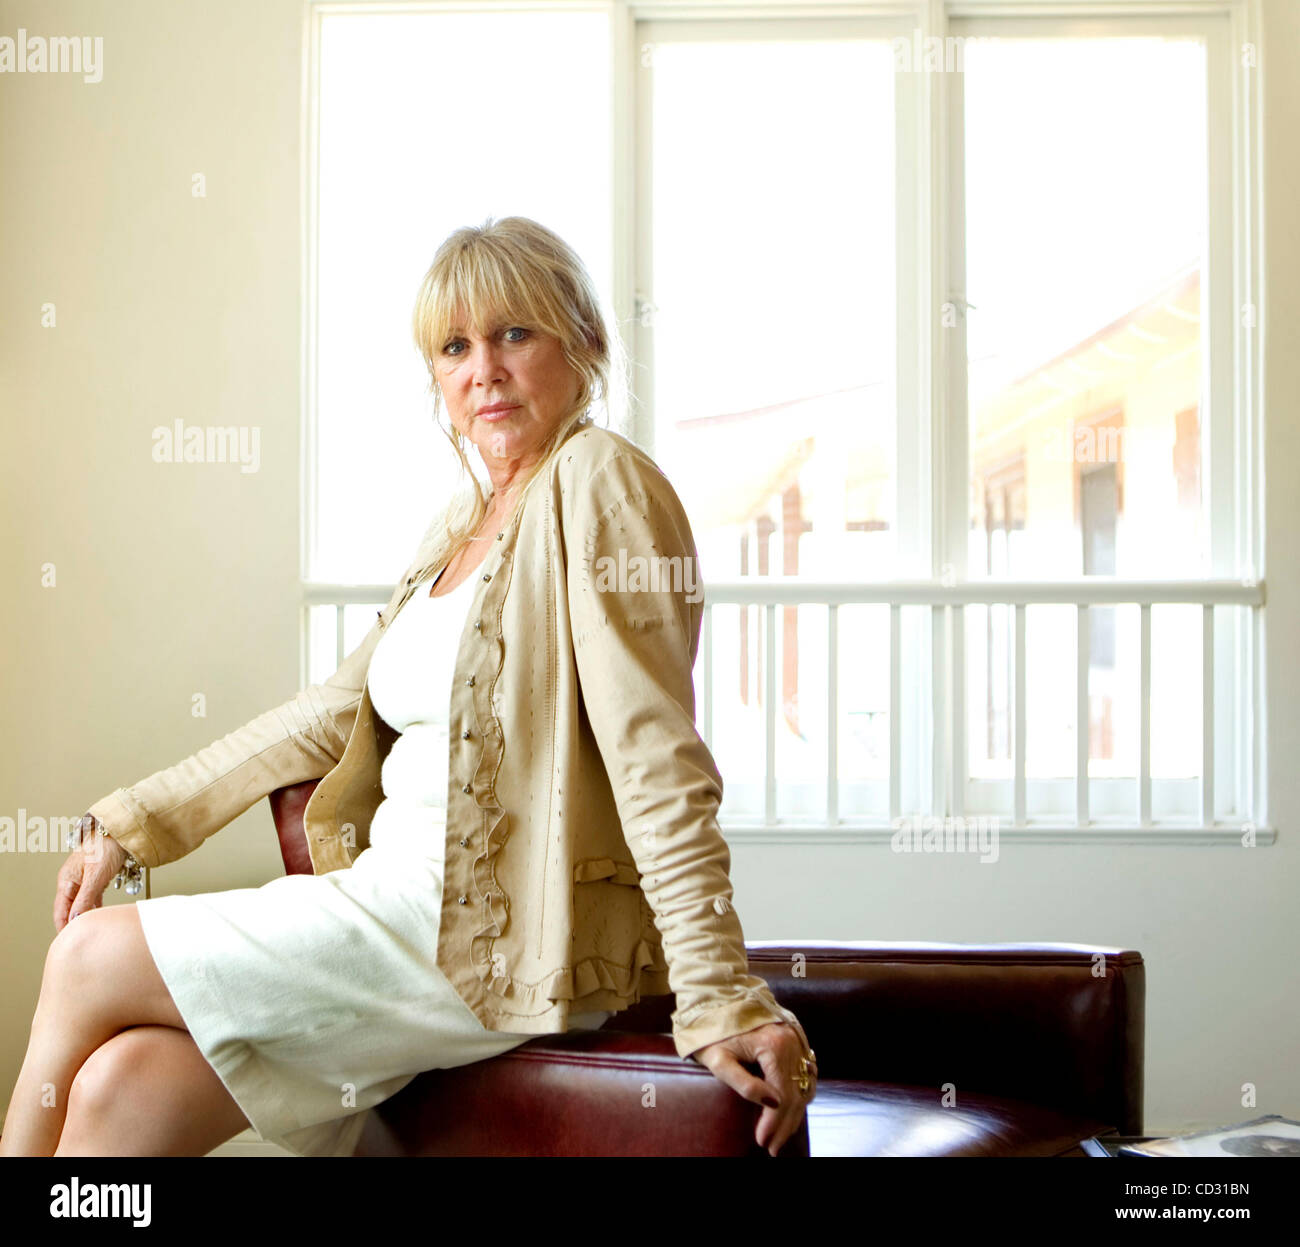 April 2, 2008, San Diego, California, USA_ PATTIE BOYD, author and photographer (and former wife of both George - Stock Image